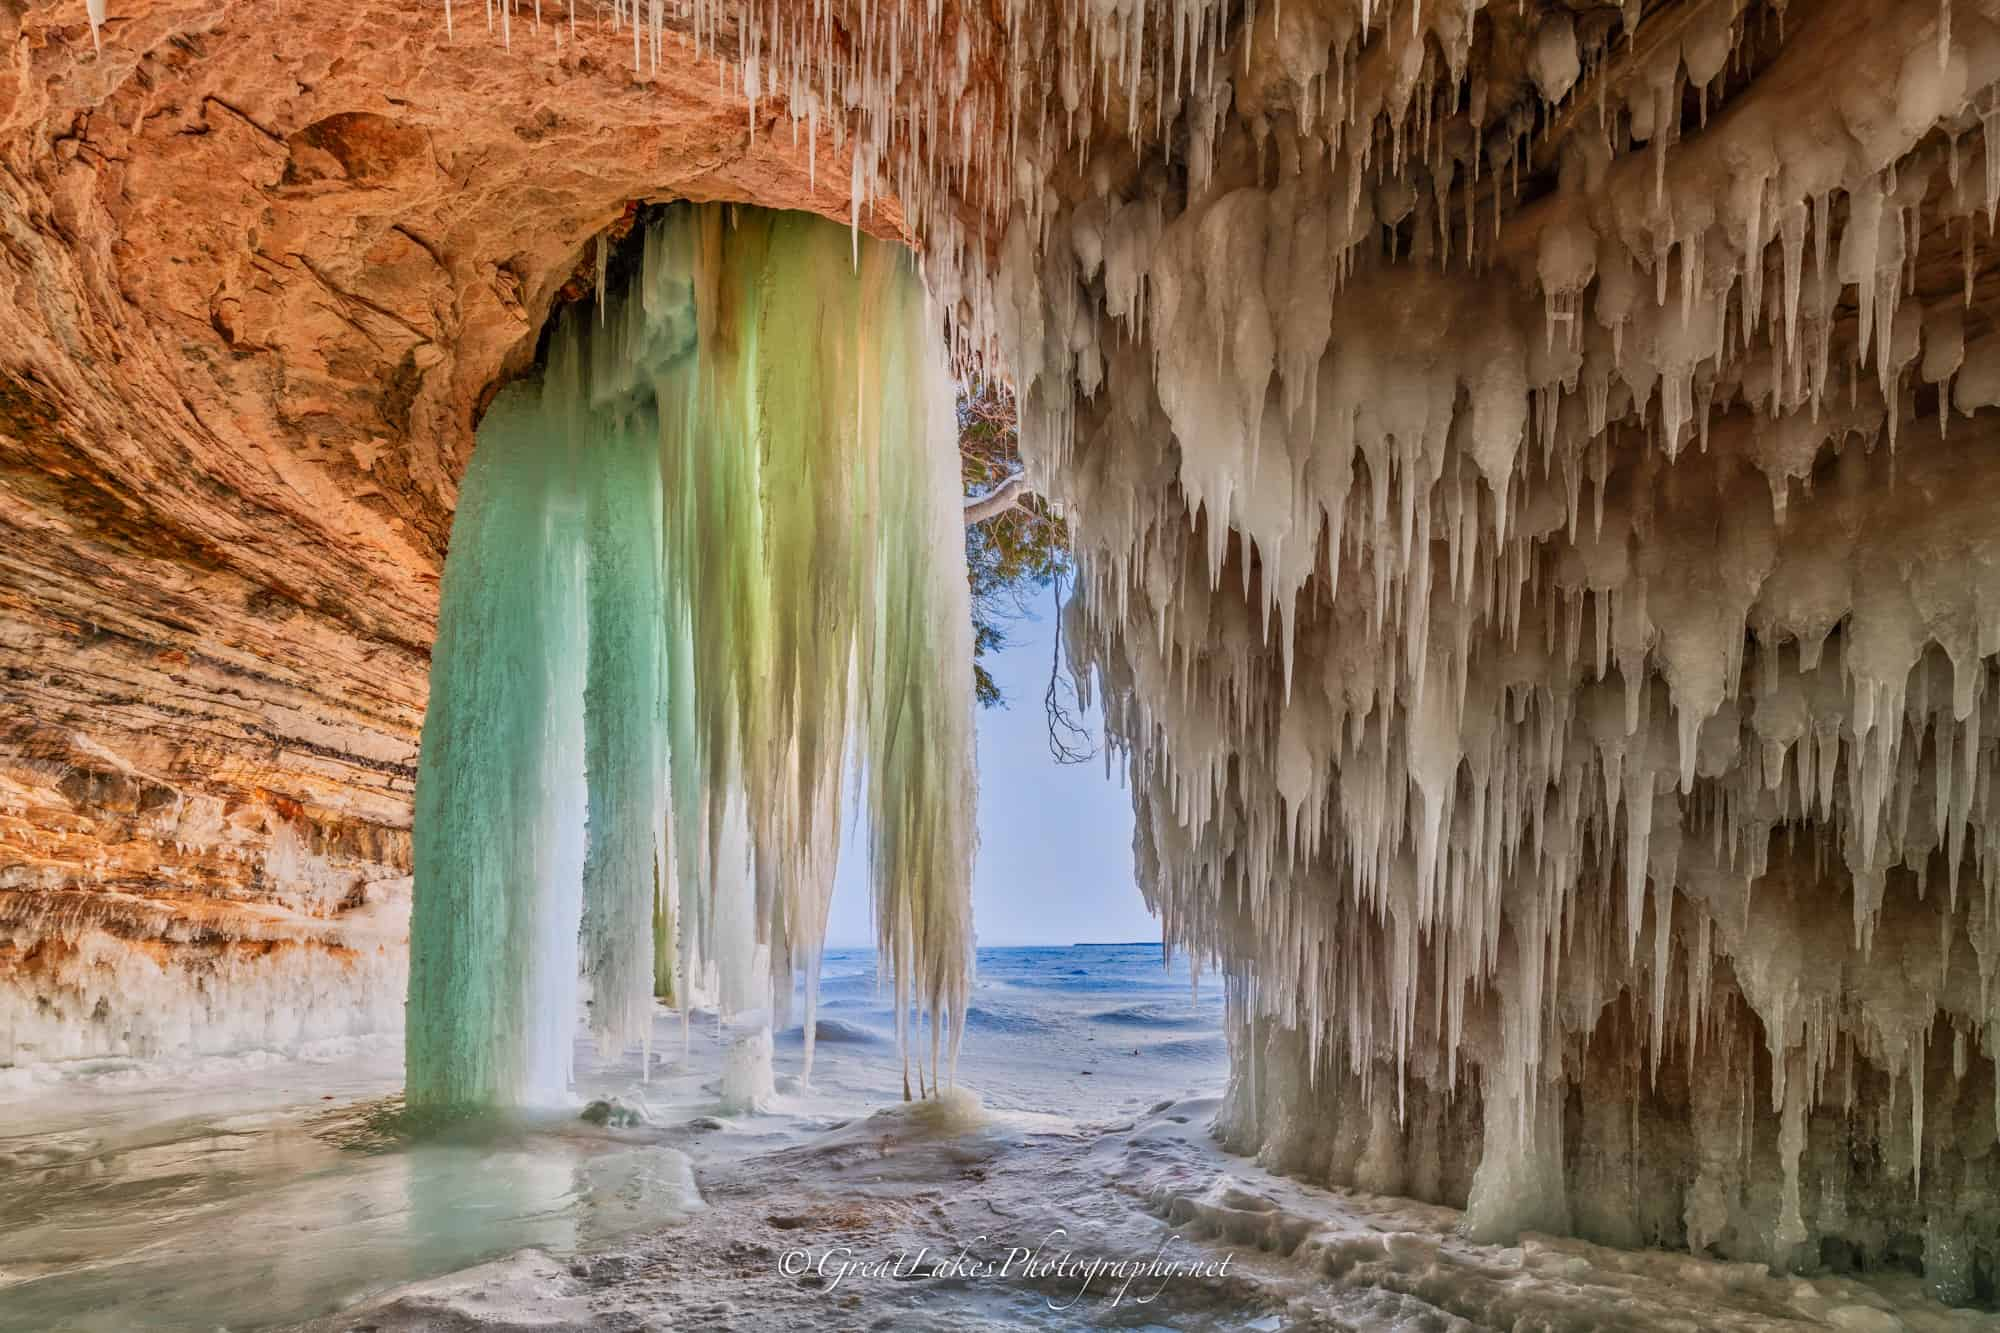 ice caves and frozen waterfalls in Michigan: Grand Island